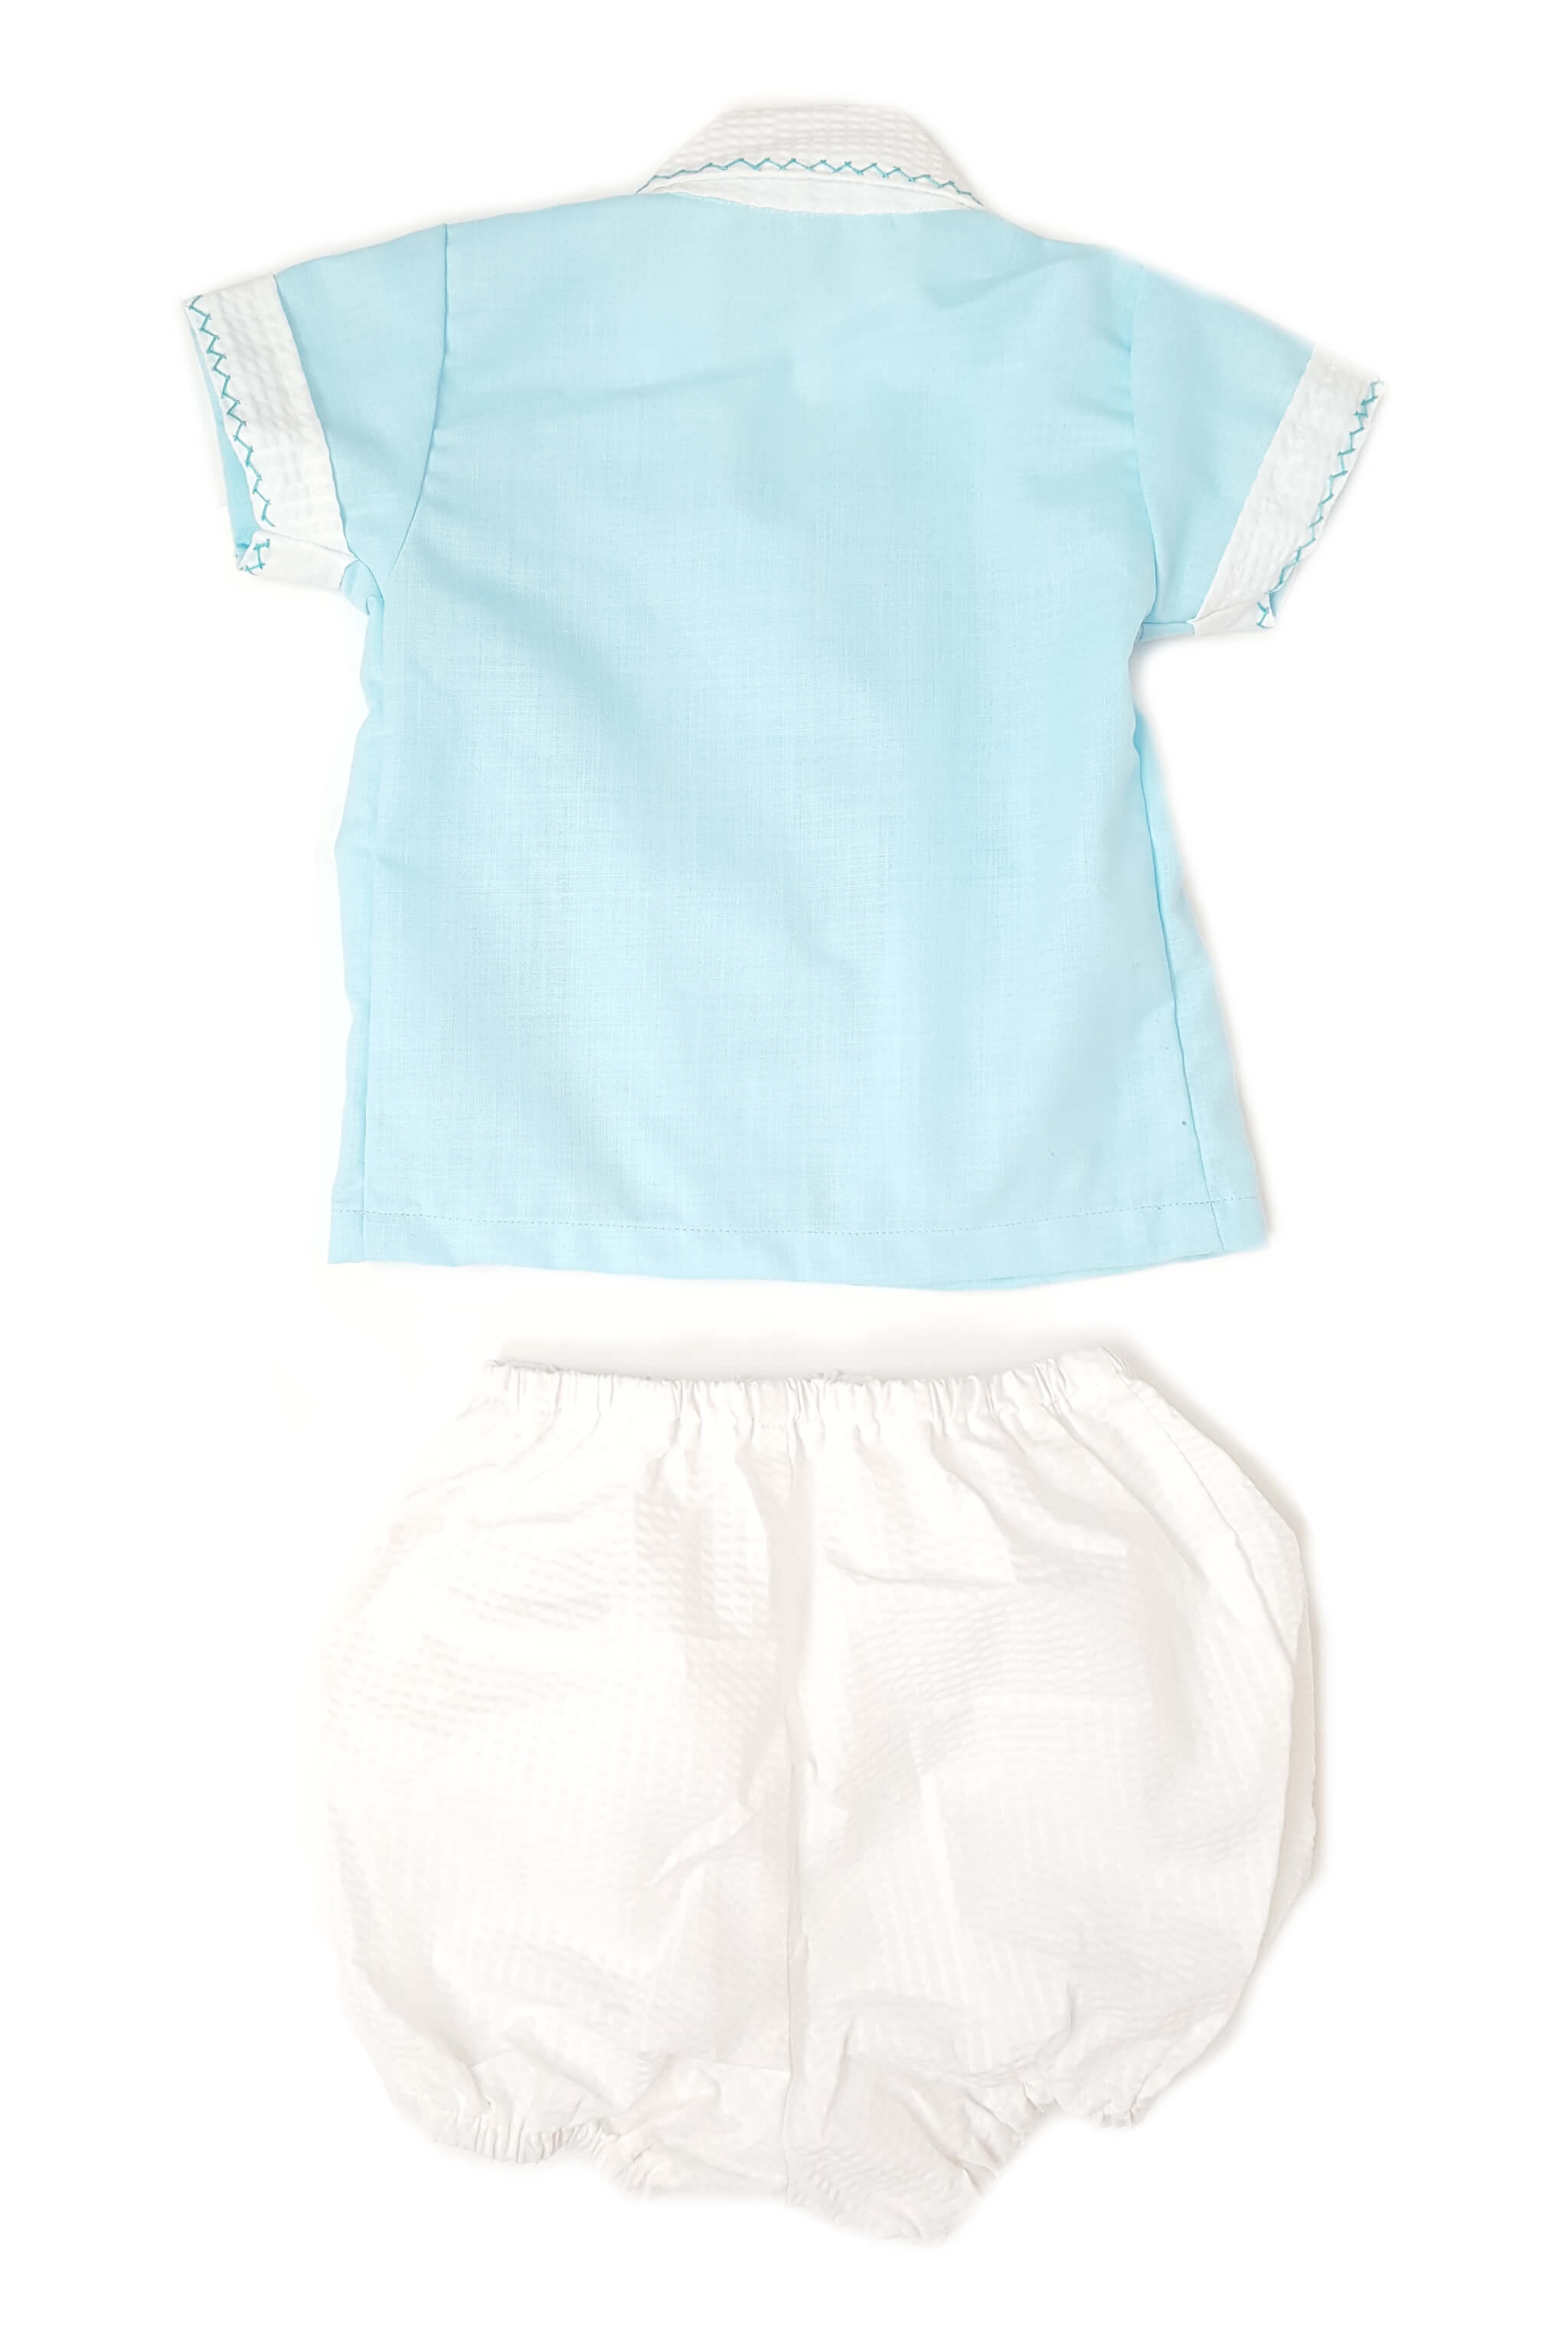 Back of blue shirt with delicate hand-smocked bodice and contrasting white collar and cuffs with white bloomer for baby boys